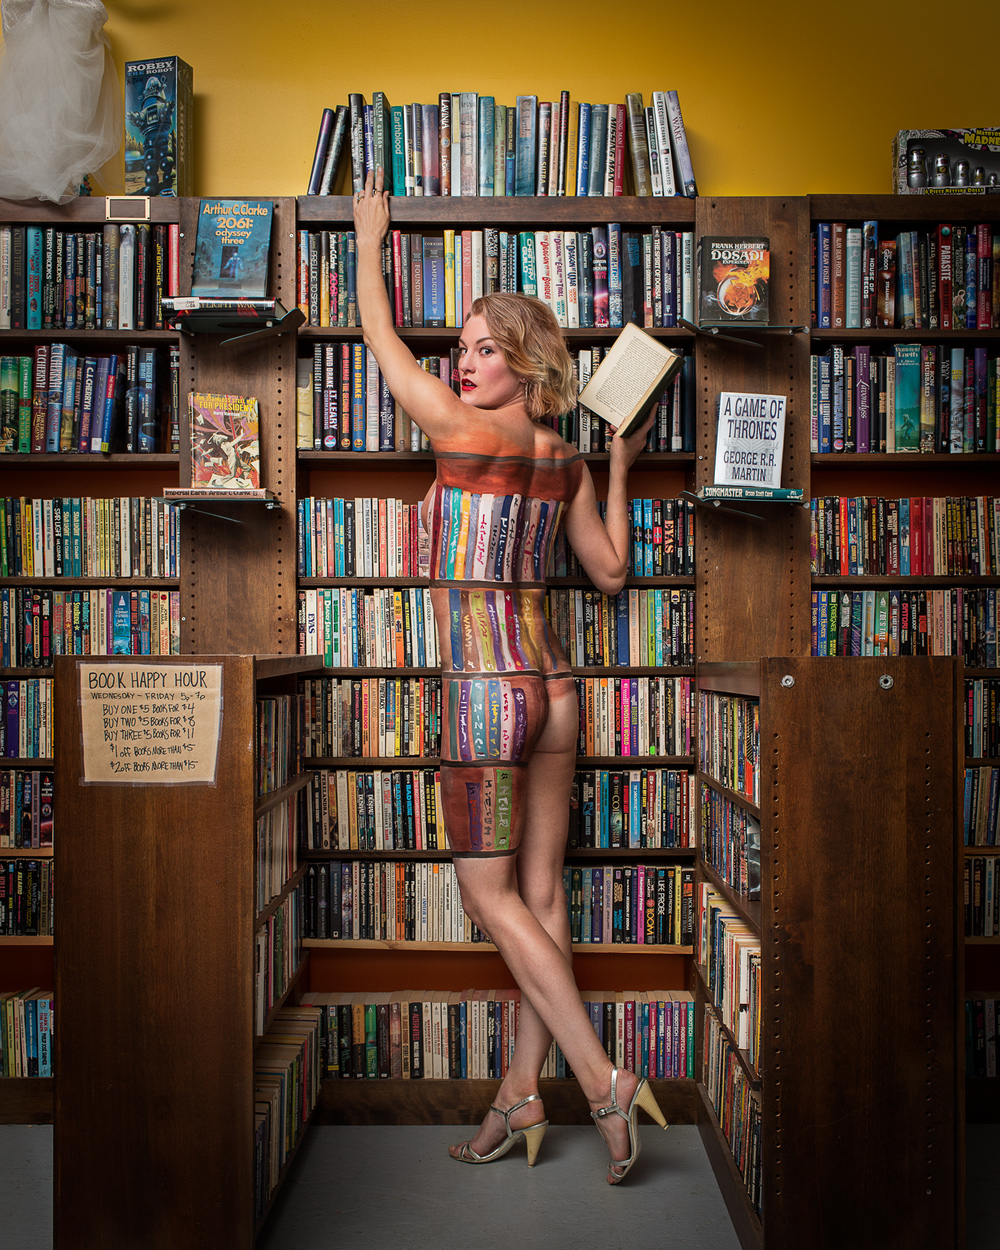 Cici Body Painted Into A Bookshelf Wadman